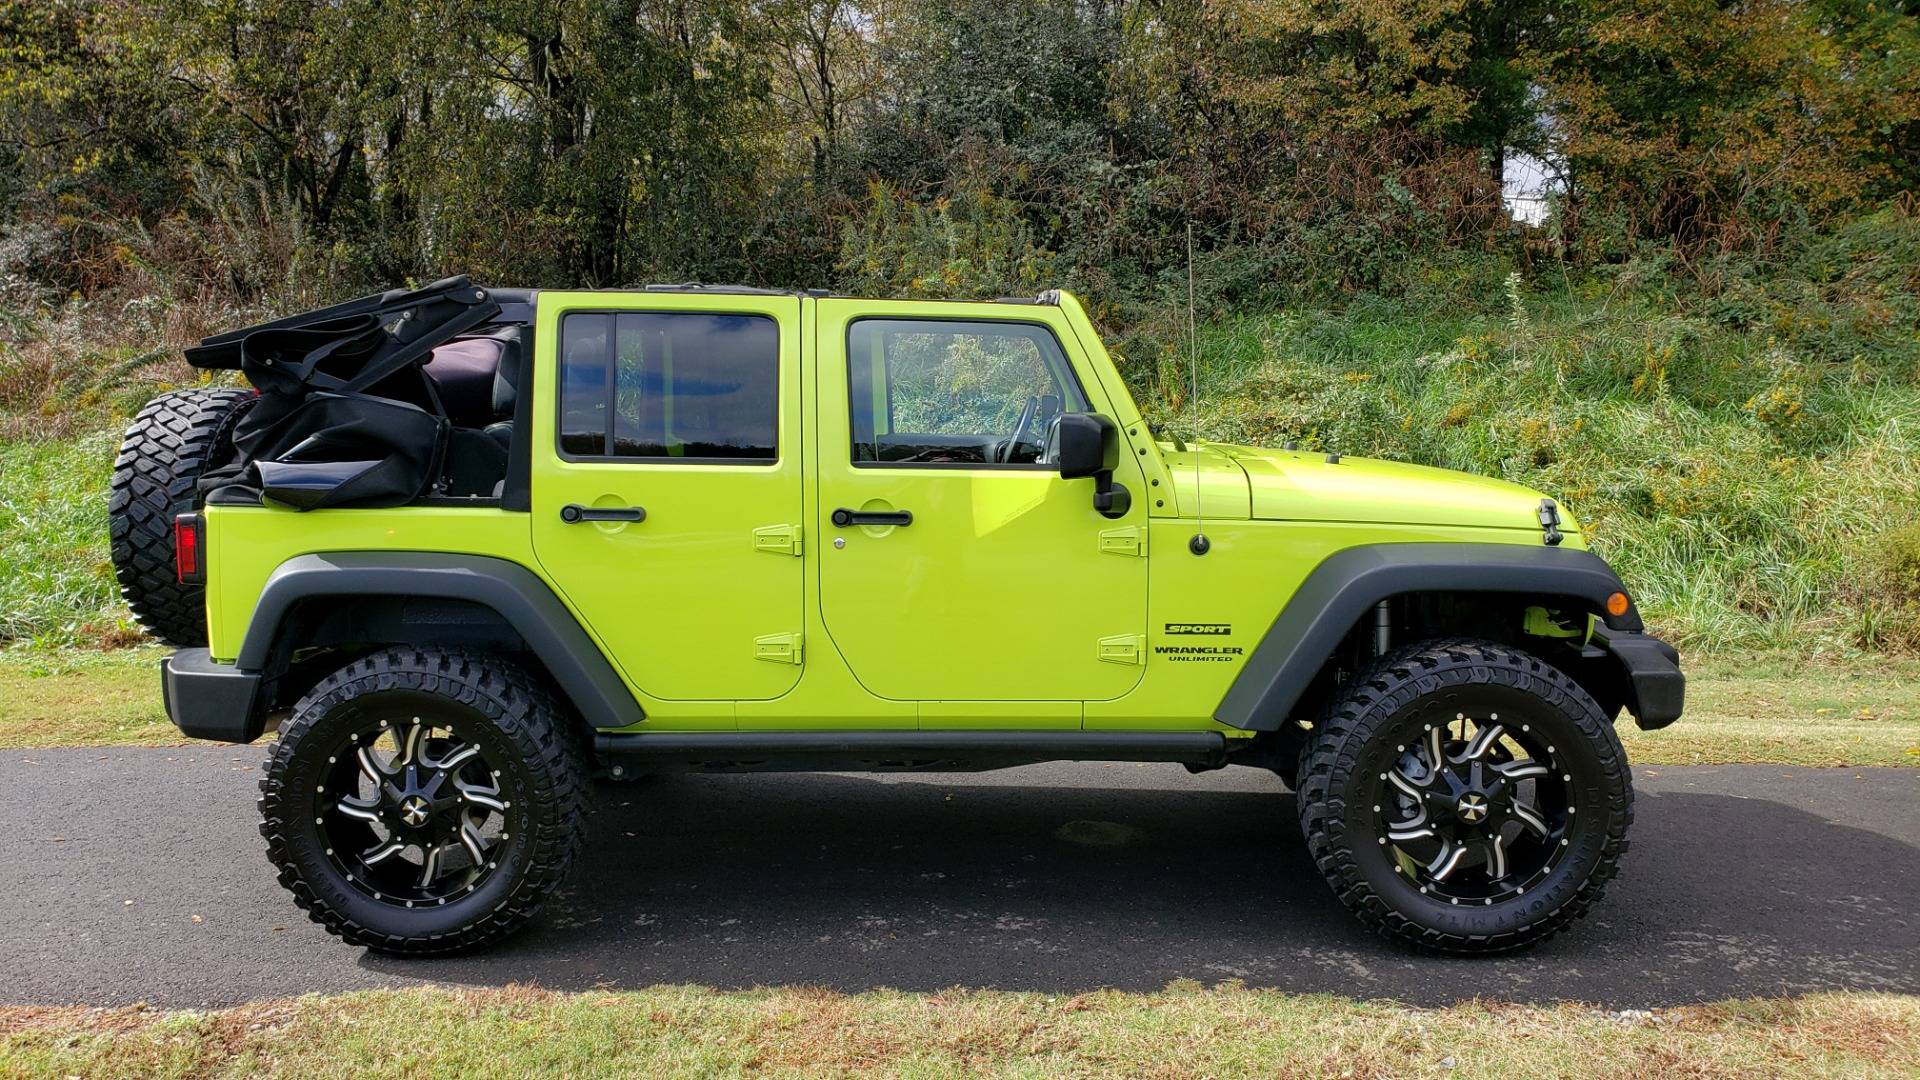 Used 2016 Jeep WRANGLER UNLIMITED SPORT 4X4 / POWER TOP / NAV / HTD STS / REARVIEW for sale $36,999 at Formula Imports in Charlotte NC 28227 11